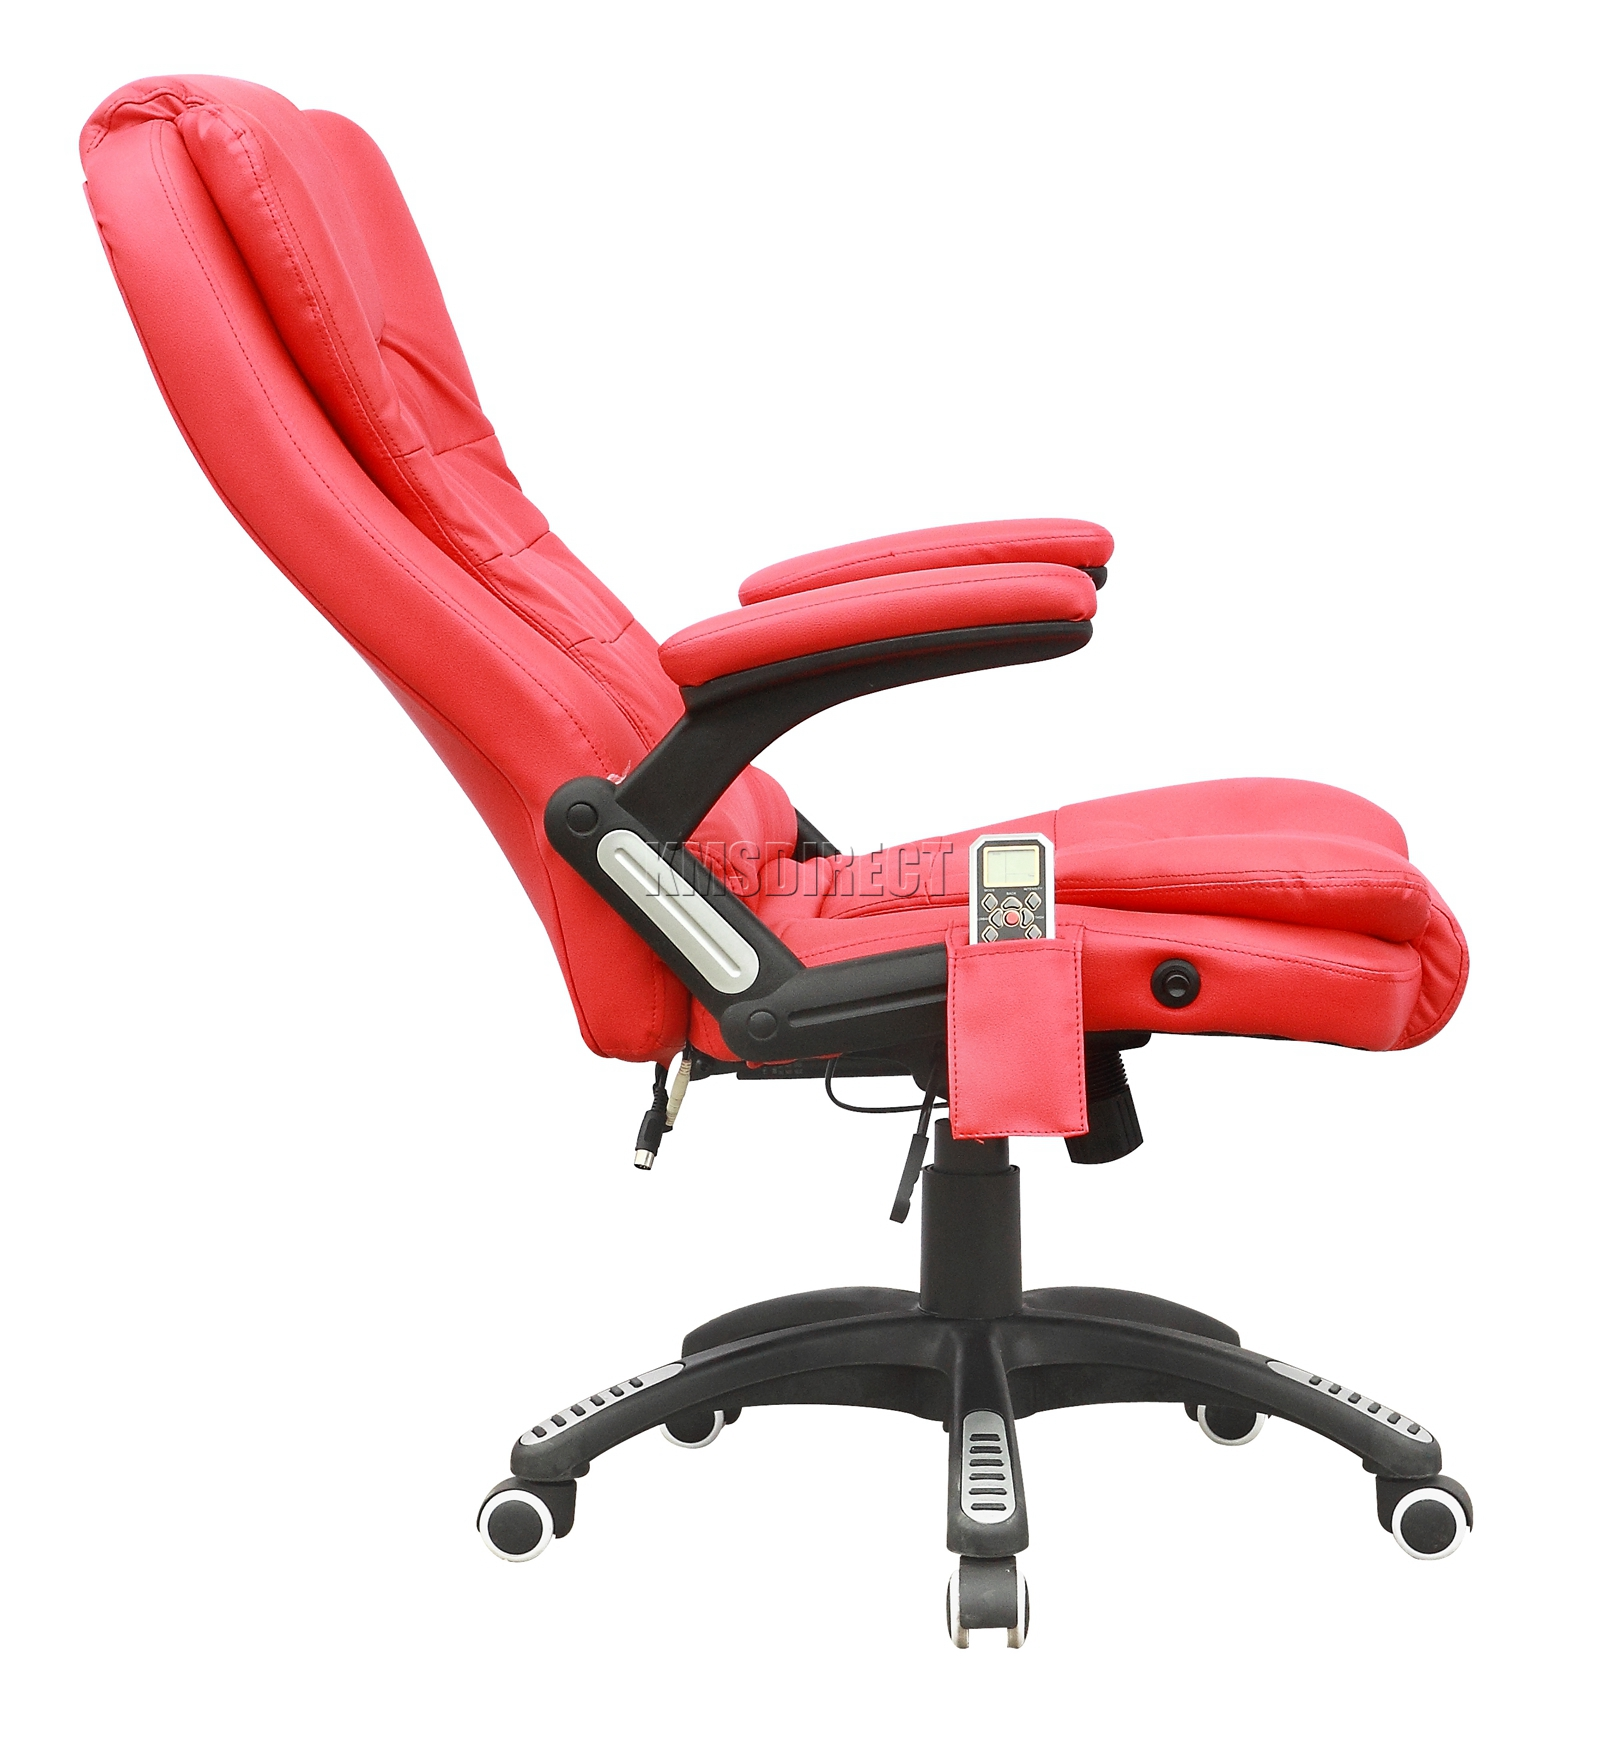 luxury office chairs leather. Sentinel FoxHunter 8025 Leather 6 Point Massage Office Computer Chair Reclining Swivel Luxury Chairs S